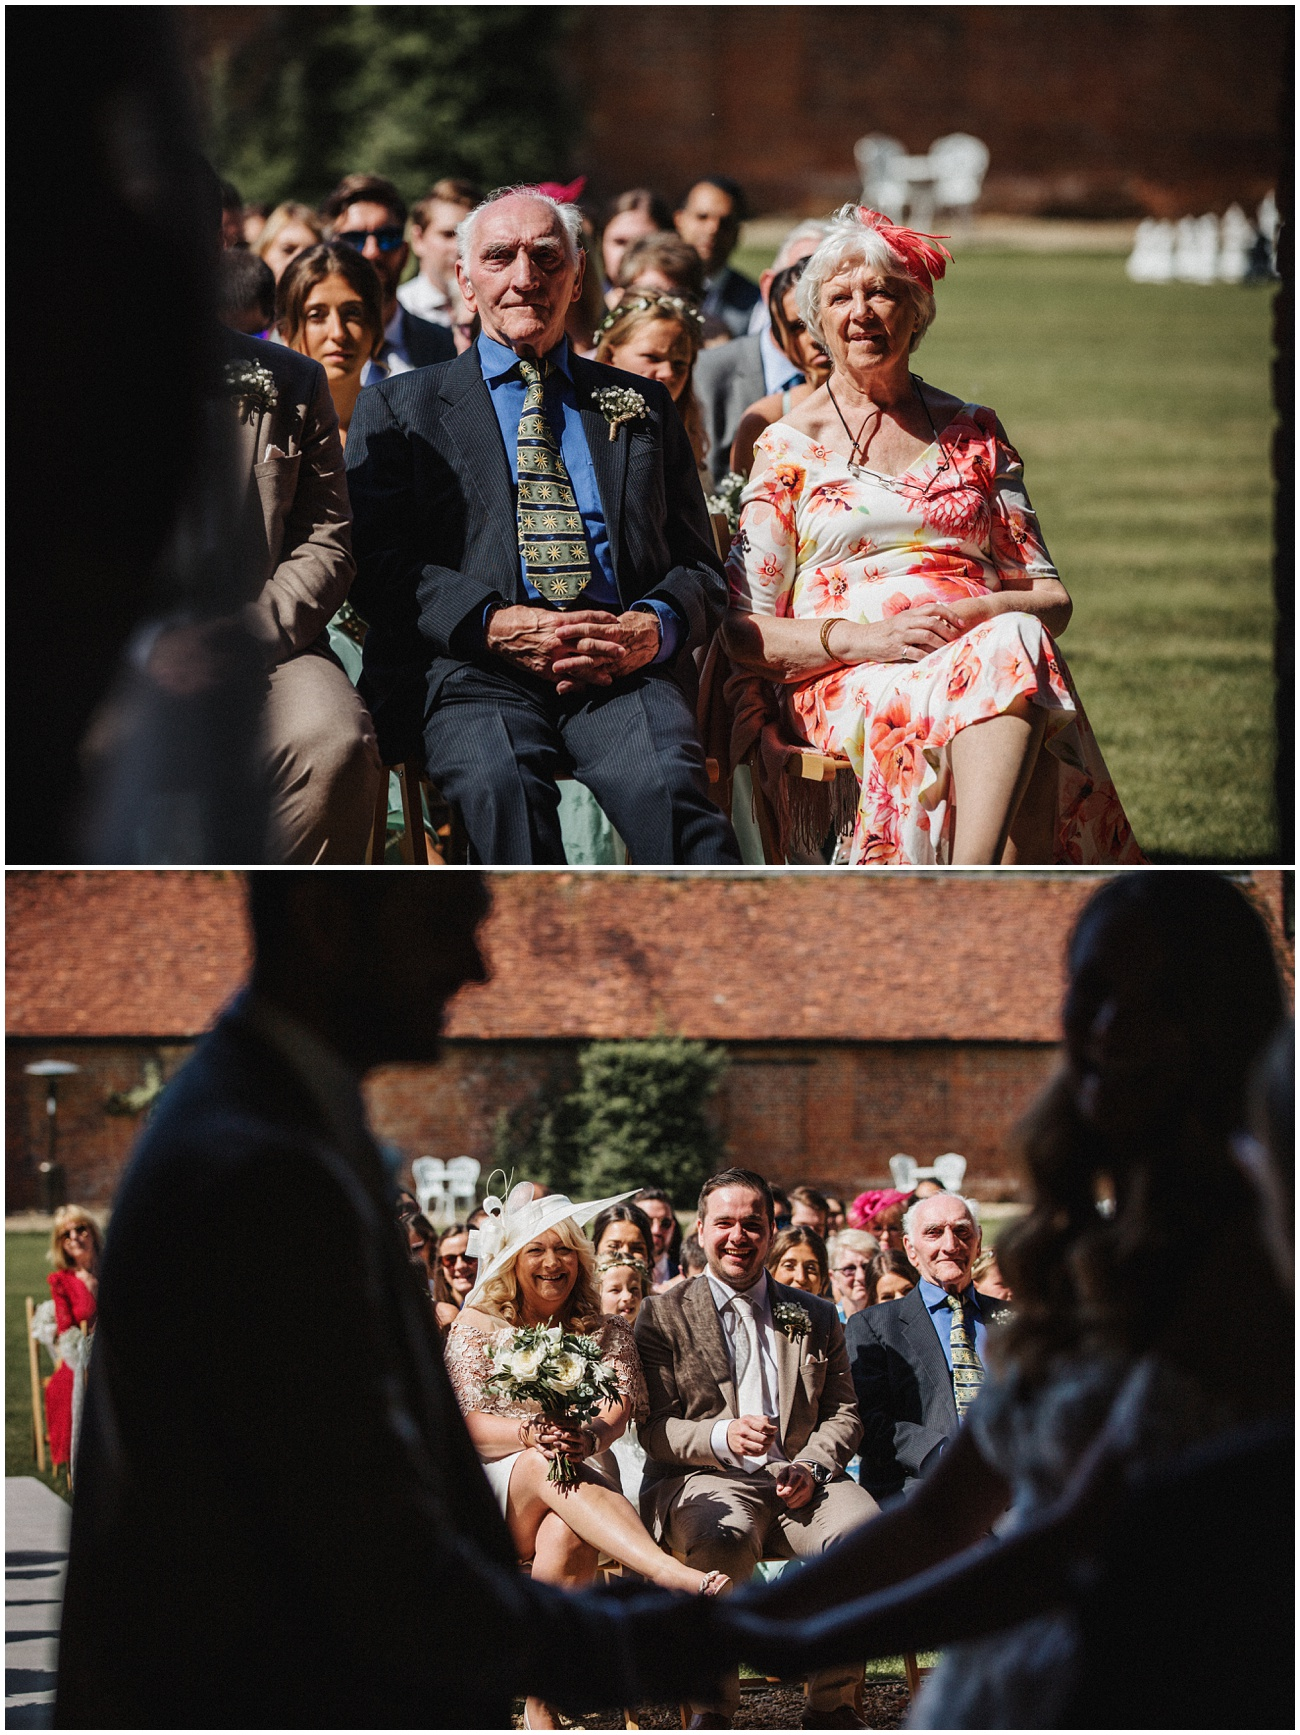 Wedding guests laugh and watch the couple tie the knot at the alter